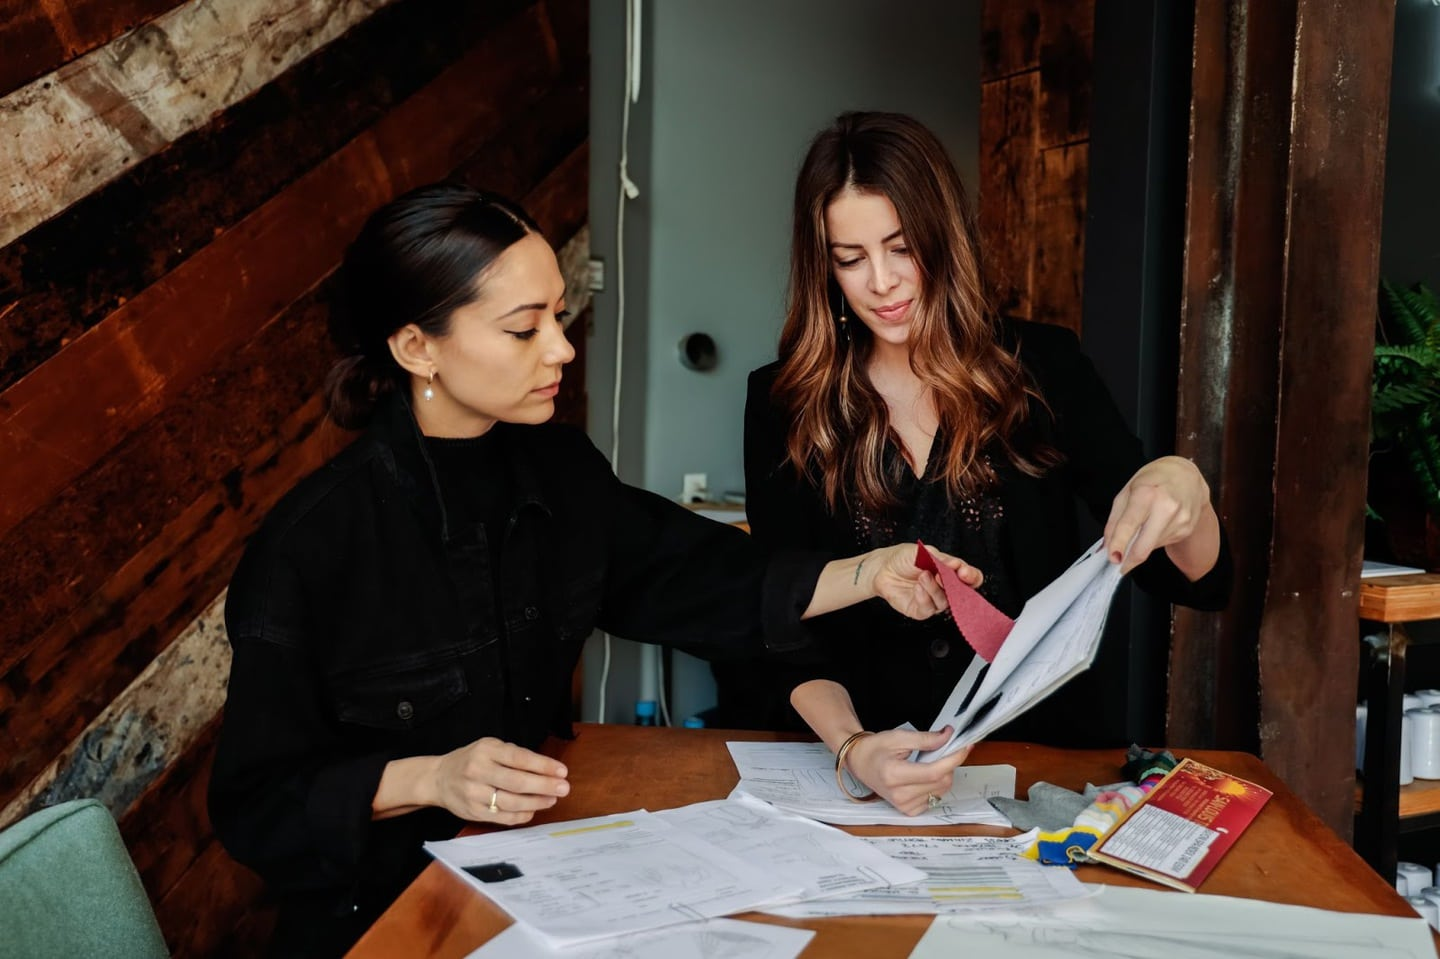 Two fashion designers going over their clothing line fabrics